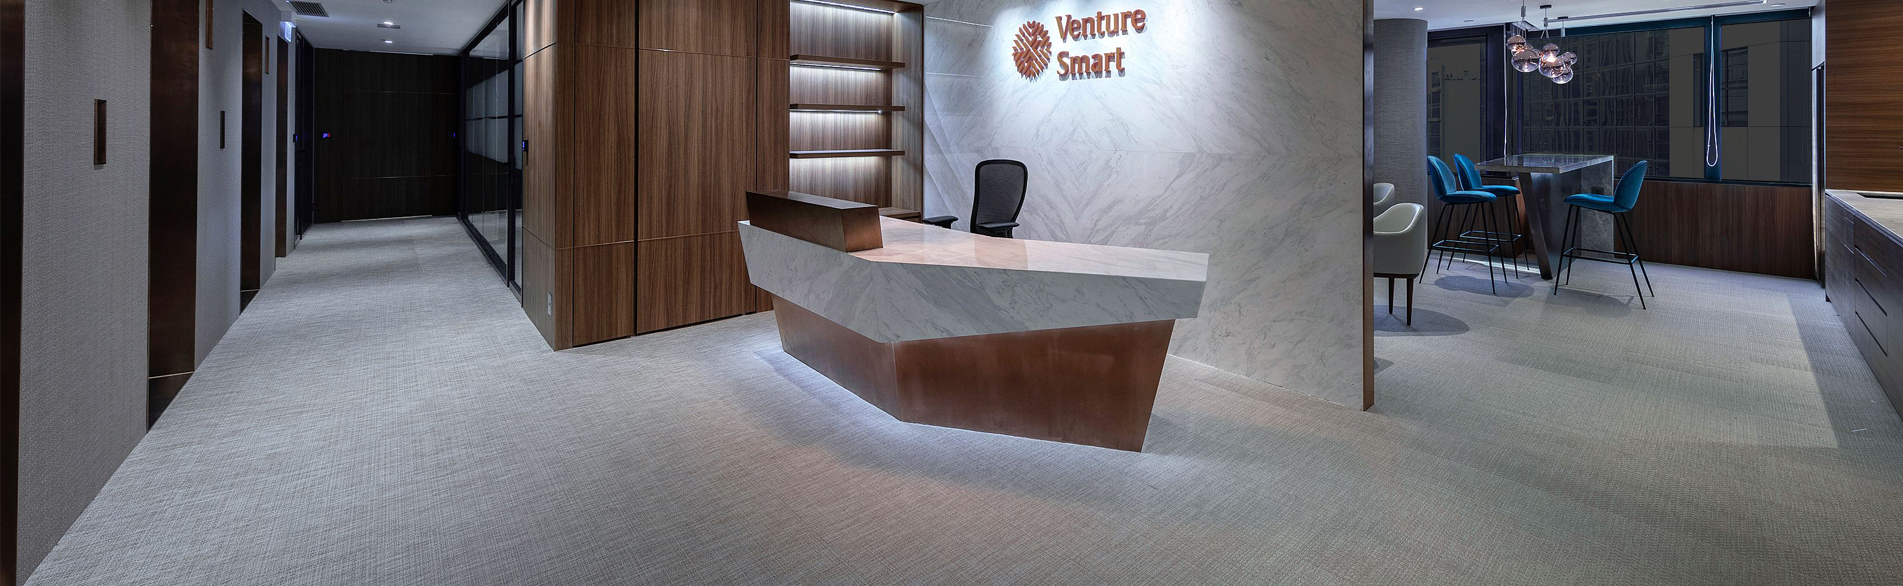 Venture Smart, Hong Kong - Gallery (3)